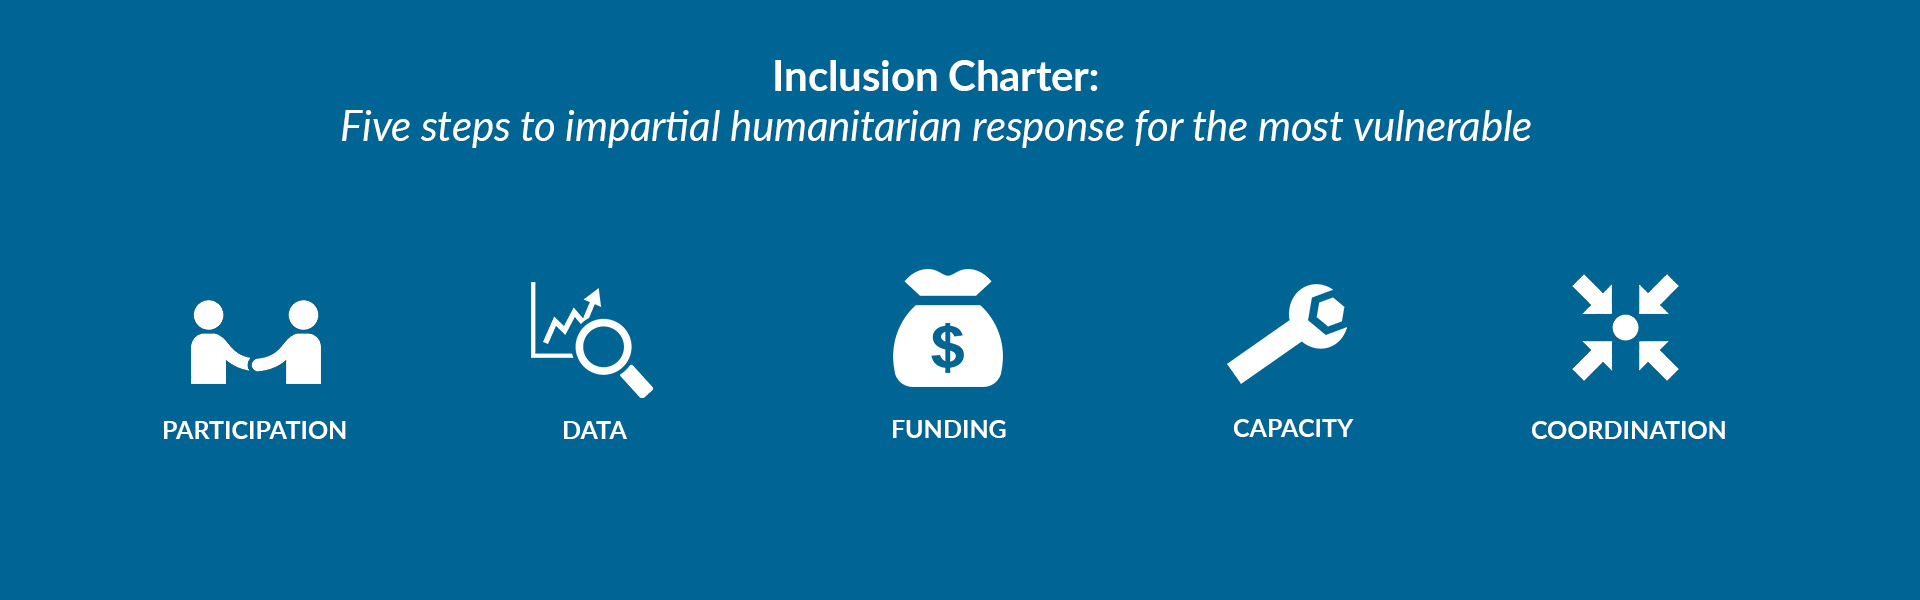 If you are a humanitarian actor, please sign up to the Inclusion Charter: Five steps to impartial humanitarian response